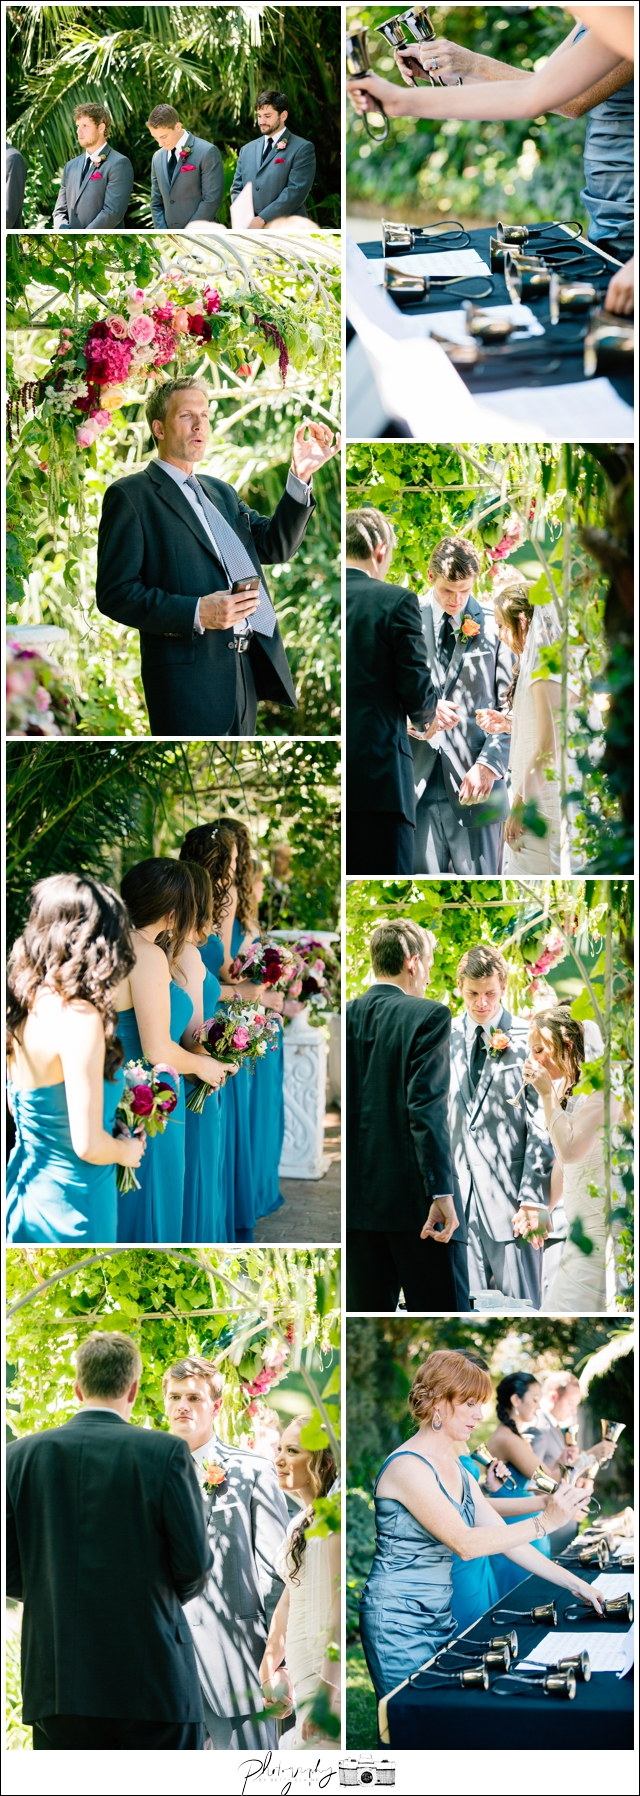 29-Ceremony-Outdoors-Bride-Groom-Bell-Choir-Seattle-Wedding-Photographer-Photography-by-Betty-Elaine